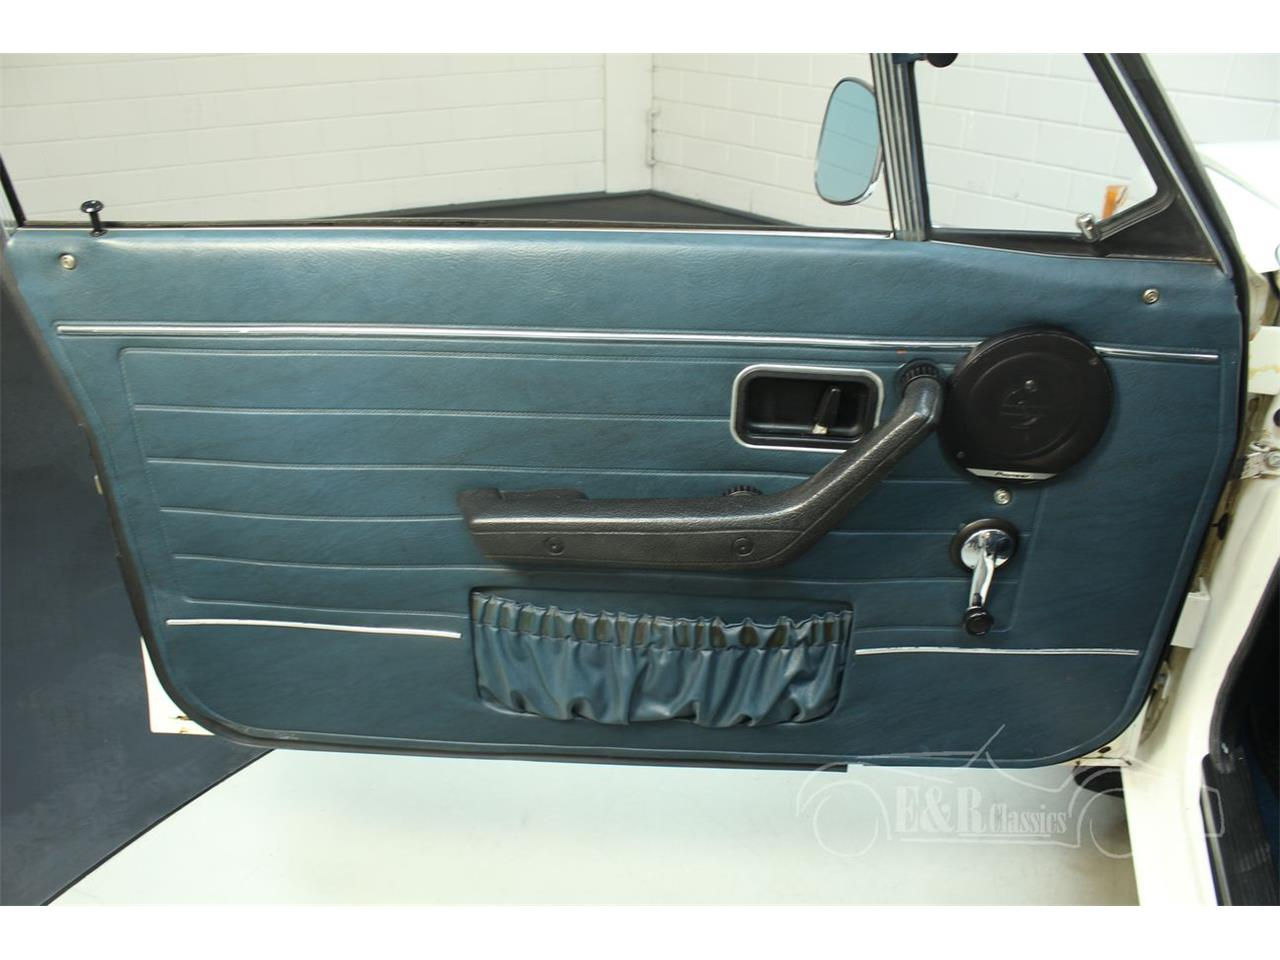 Large Picture of Classic 1972 Volvo 142 - $13,400.00 Offered by E & R Classics - Q3GJ